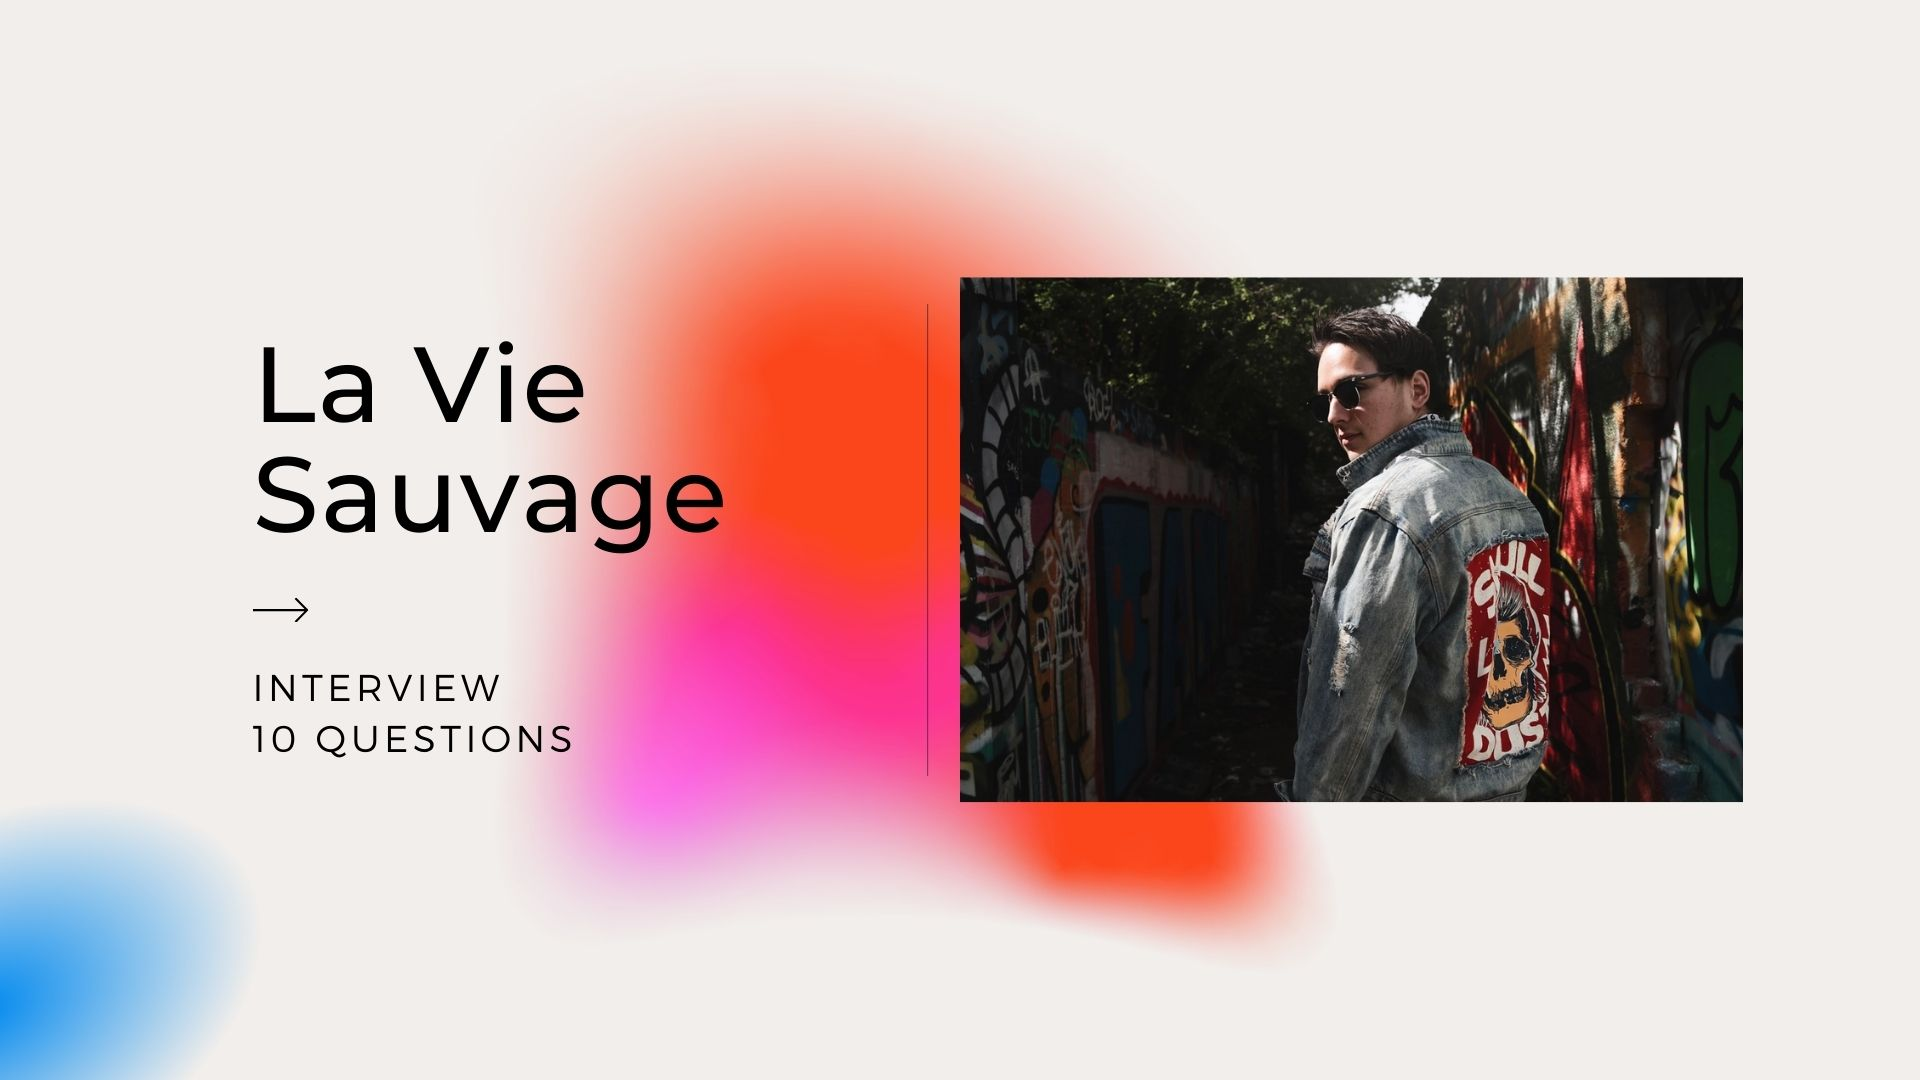 Today we would like to introduce you to La Vie Sauvage, the work of dutch knob-twiddler Miel, electro producer with a rock 'n roll spirit. With his new project, he aims for the club sound, yet with the outsider image that he has started to embody making psych-rock breakbeats in the past.